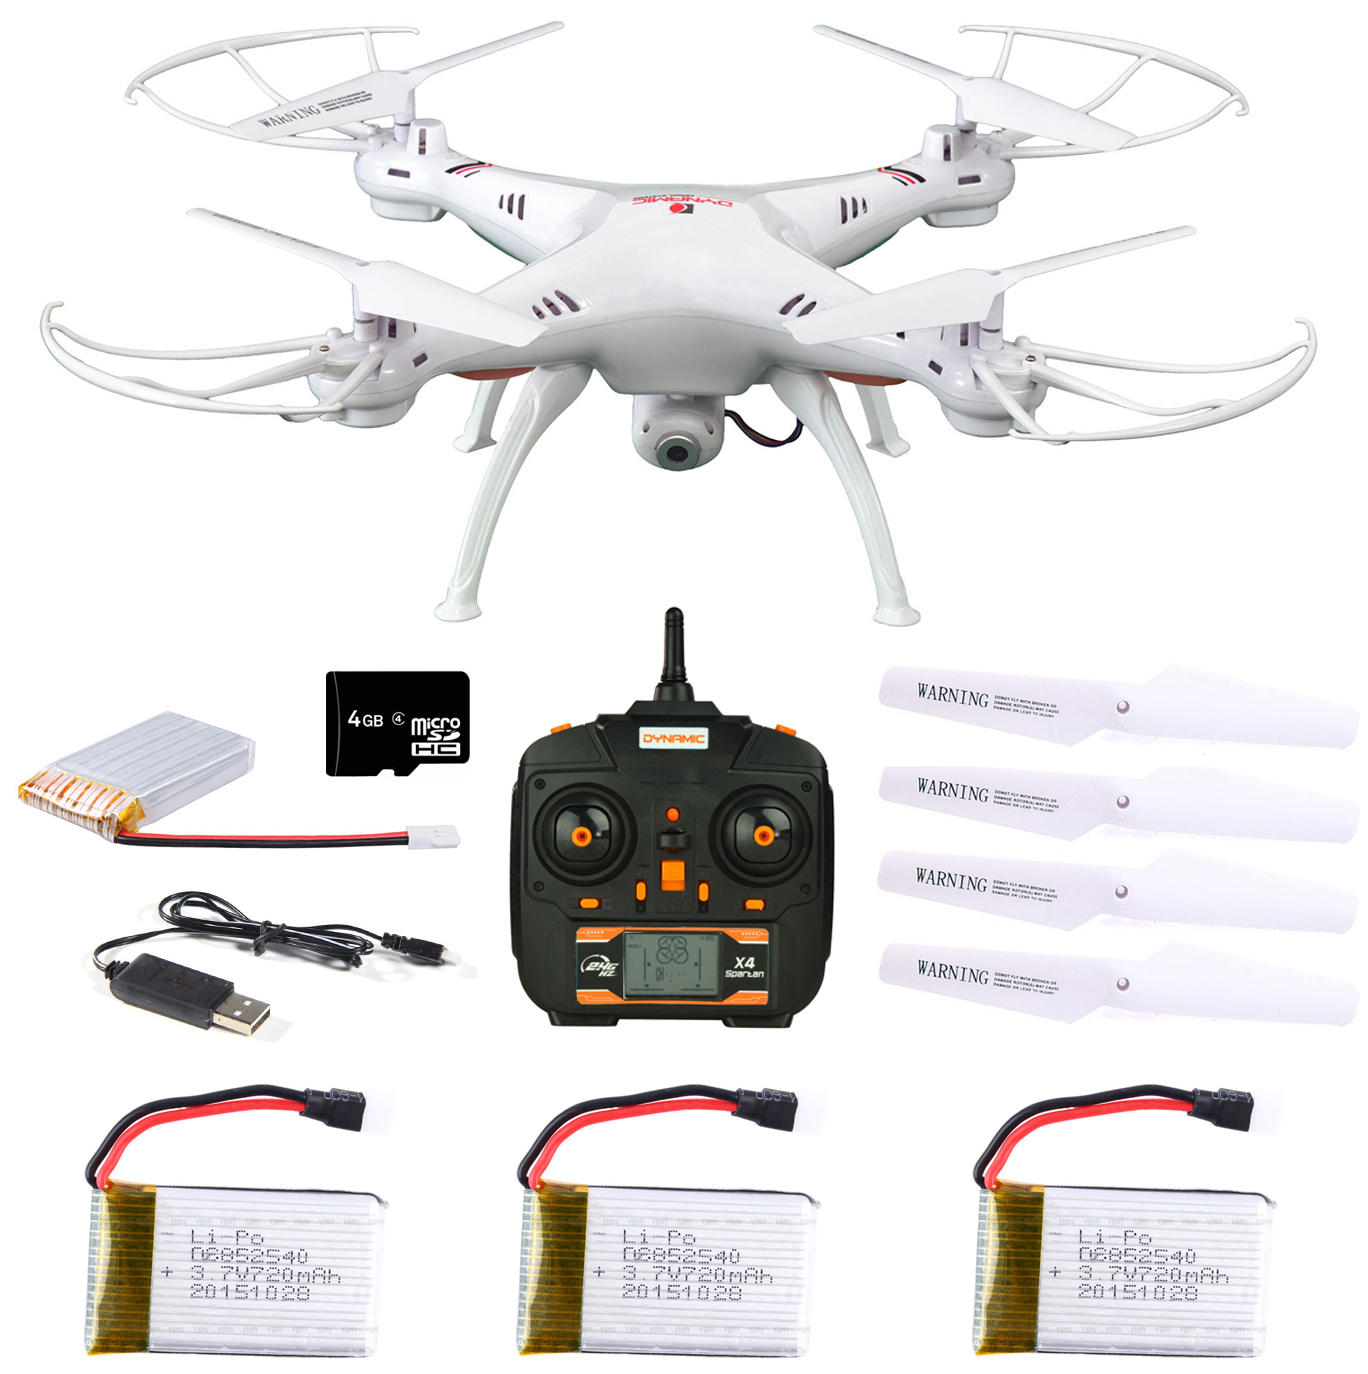 hight resolution of x5sw 1 6 axles gyro rc quadcopter 2 4g 4 ch d rone compact rc helicopter with 0 3mp w ifi fpv camera photography video device walmart com